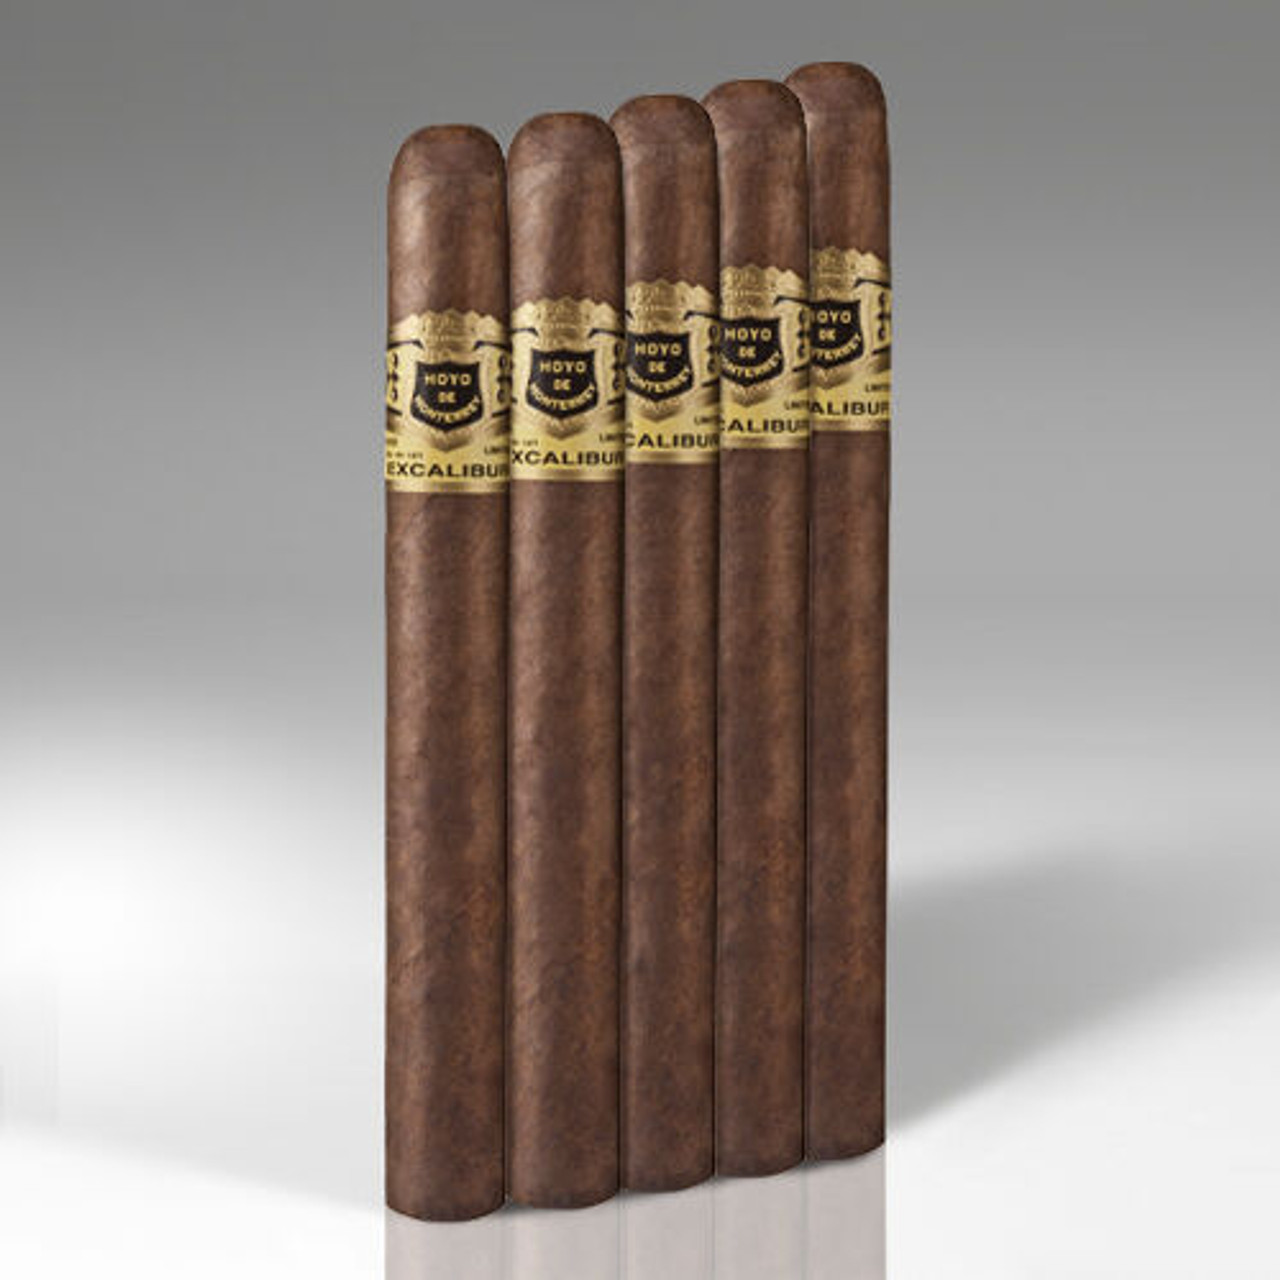 Excalibur No. II Maduro Cigars - 6.75 x 48 (Pack of 5)